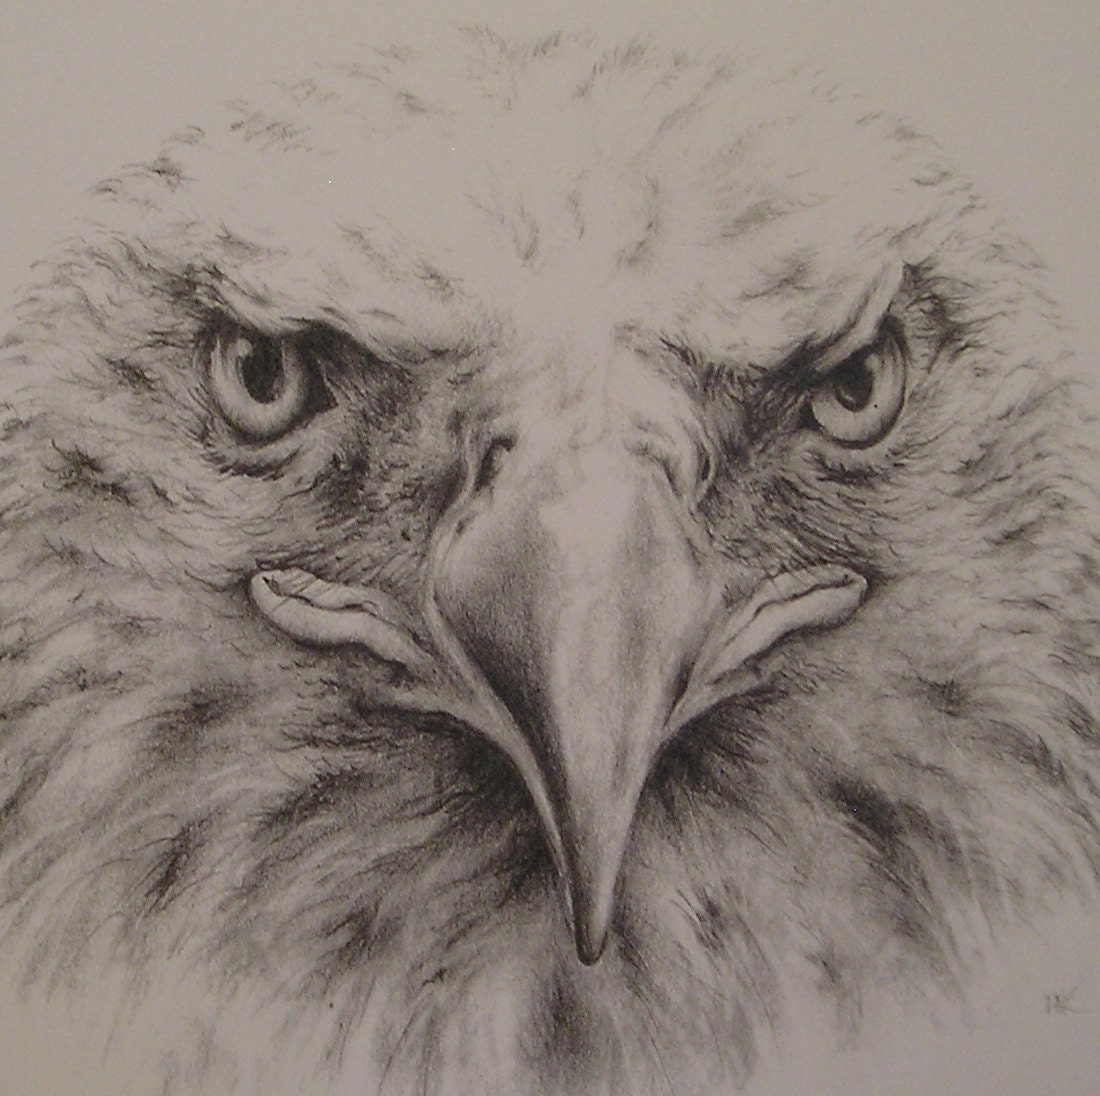 Bald Eagle Pencil Drawing - purpleinkgraphics